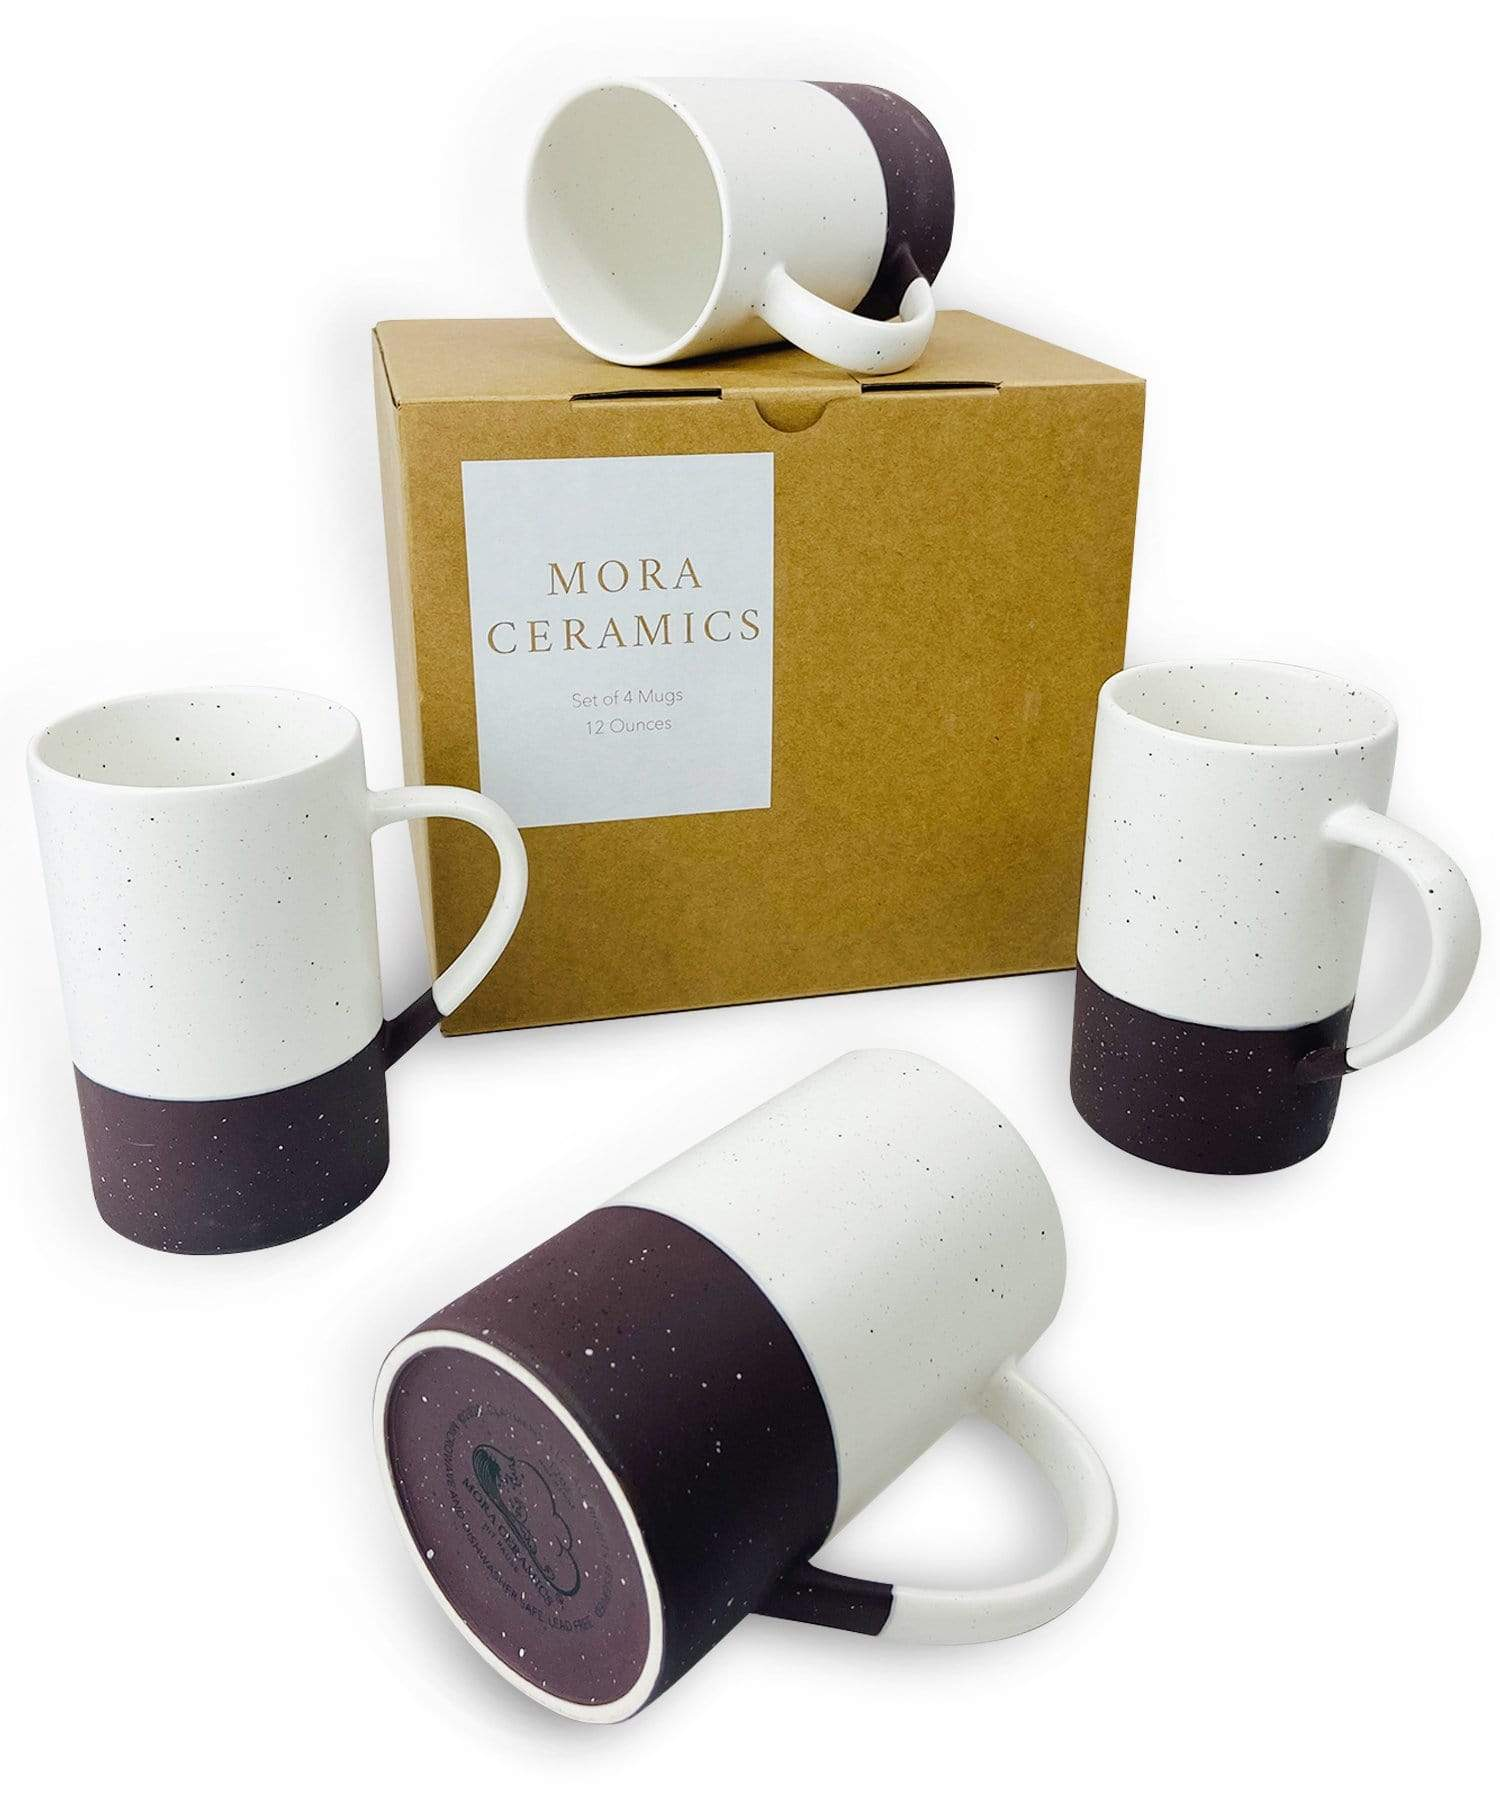 Mora Ceramics coffee mug set of four in garnet, dark purple, black, speckled minimalist style